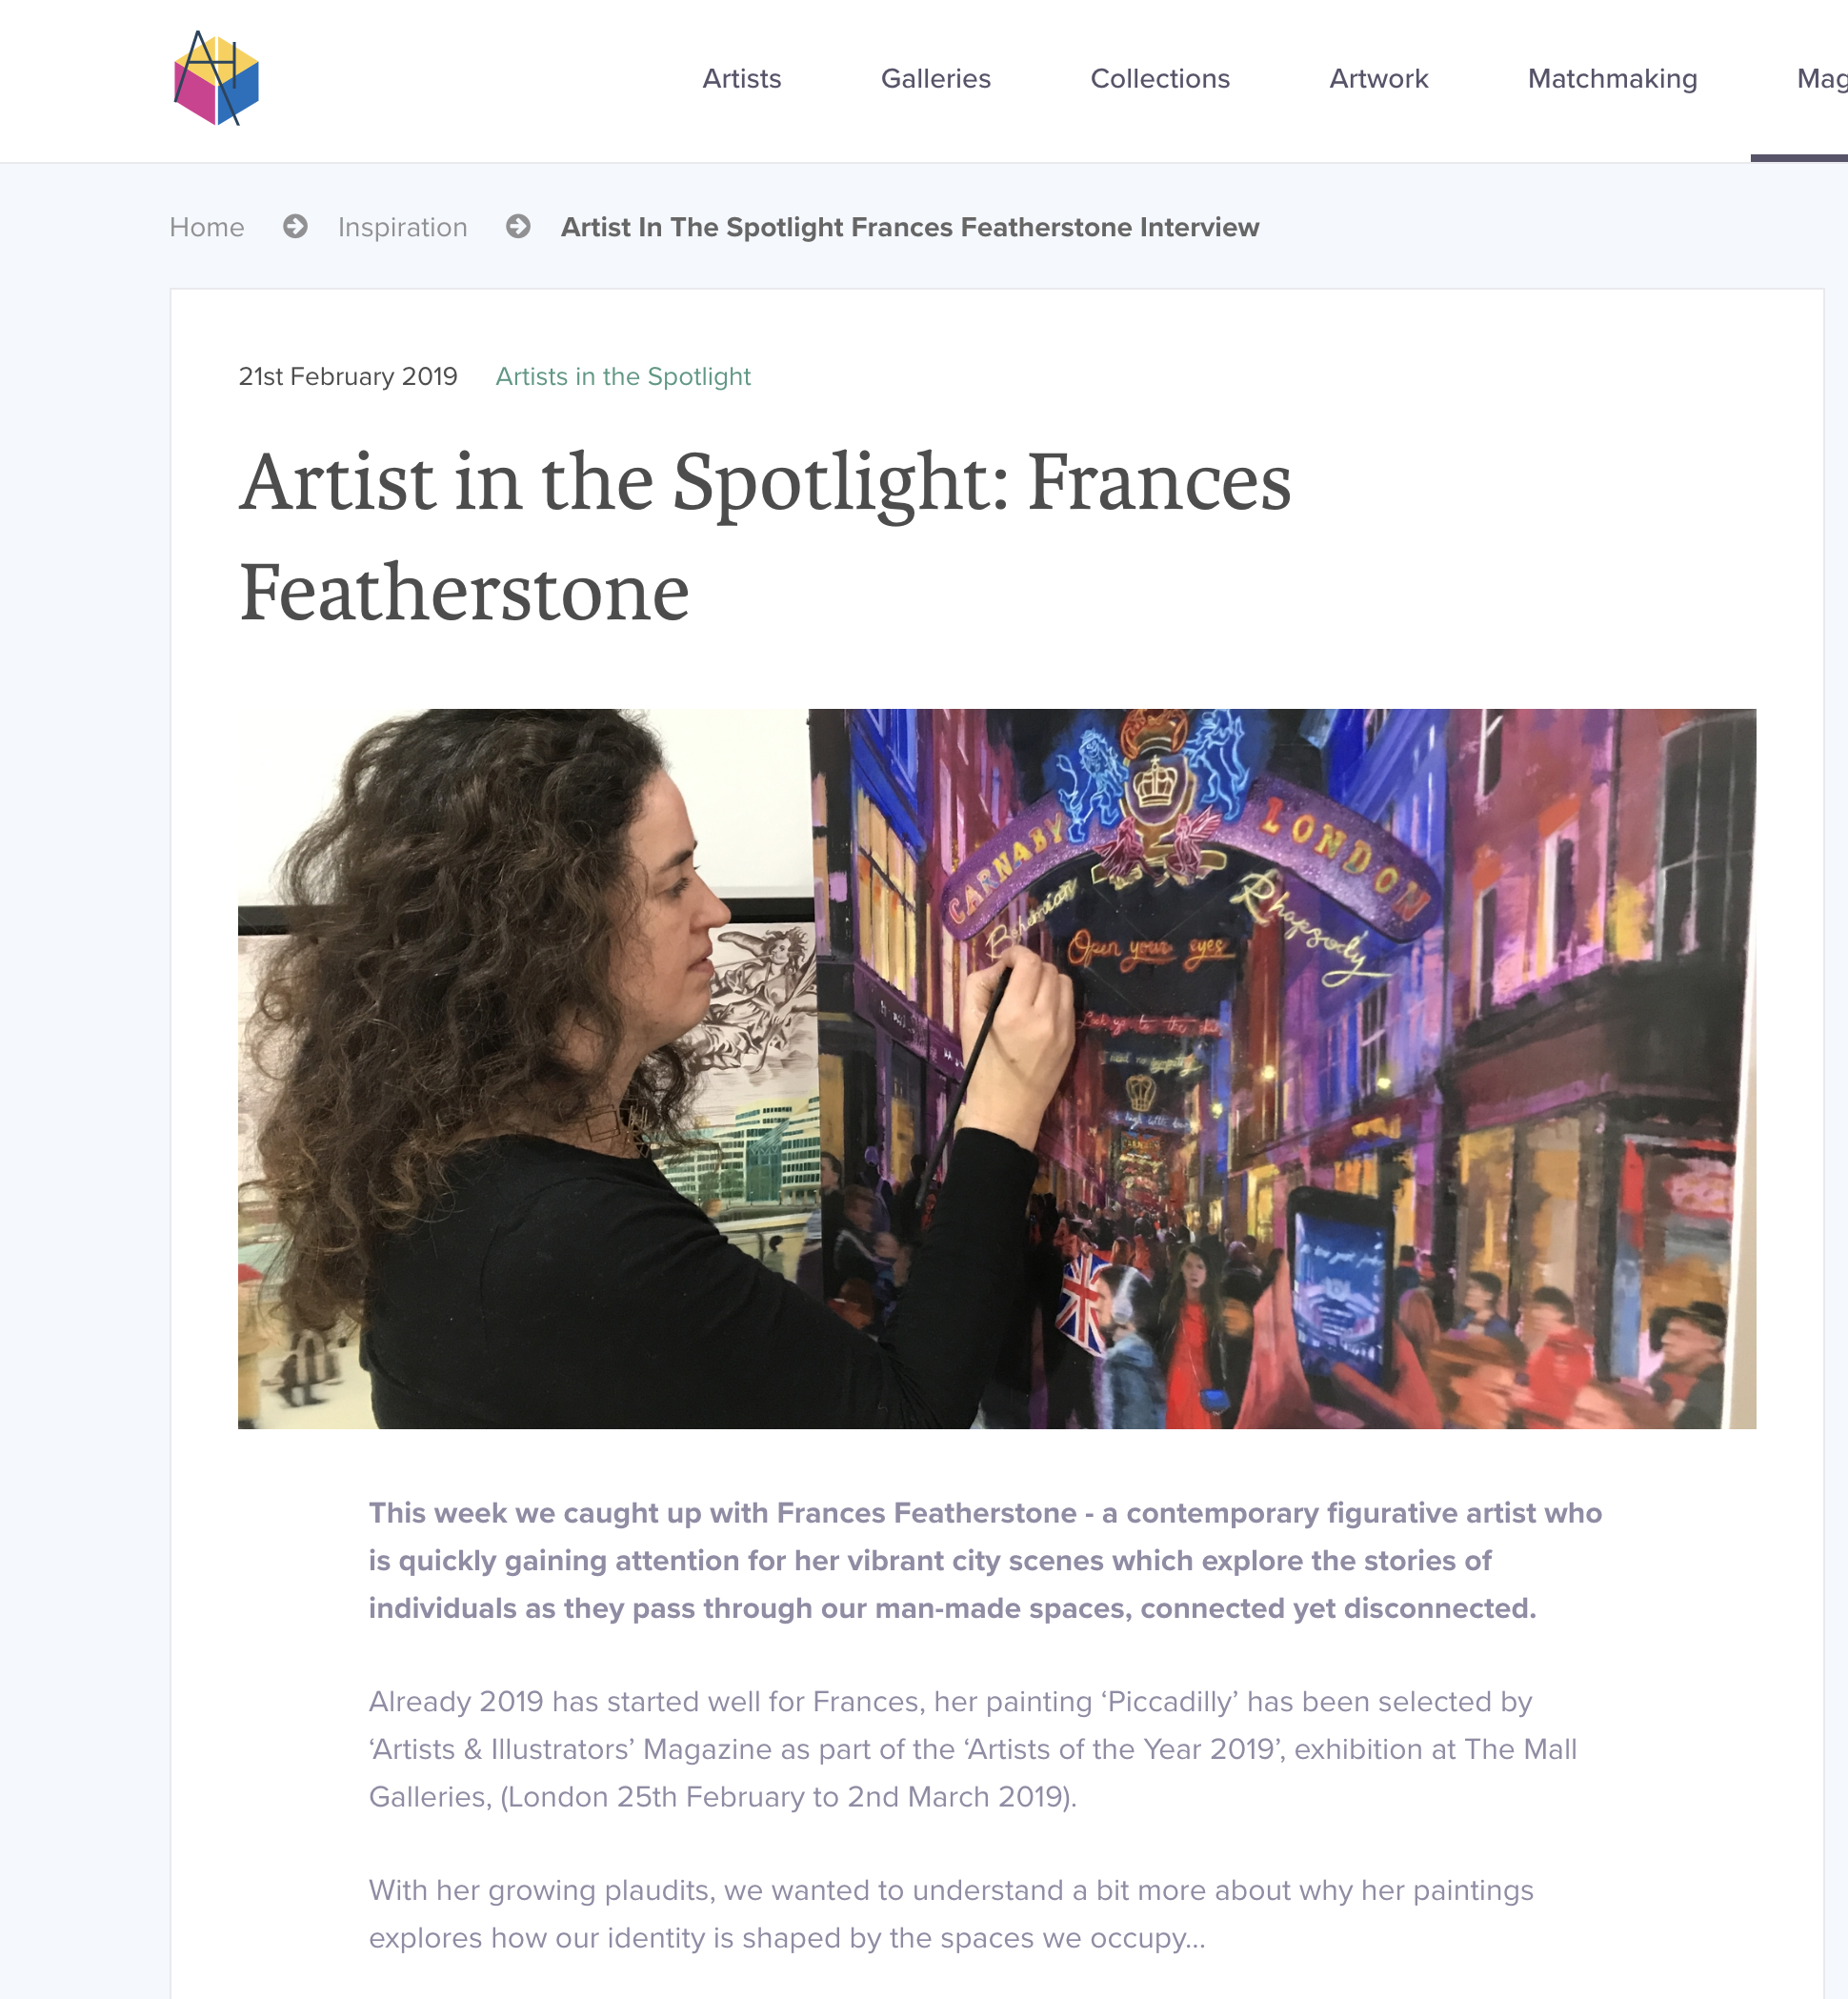 Interview by Artshaus Gallery - https://artshaus.co.uk/inspiration/artist-in-the-spotlight-frances-featherstone-interviewClick here to learn about my journey as an artist, my interests, my influences and my challenges.Thank you to Artshaus for interviewing and promoting me!